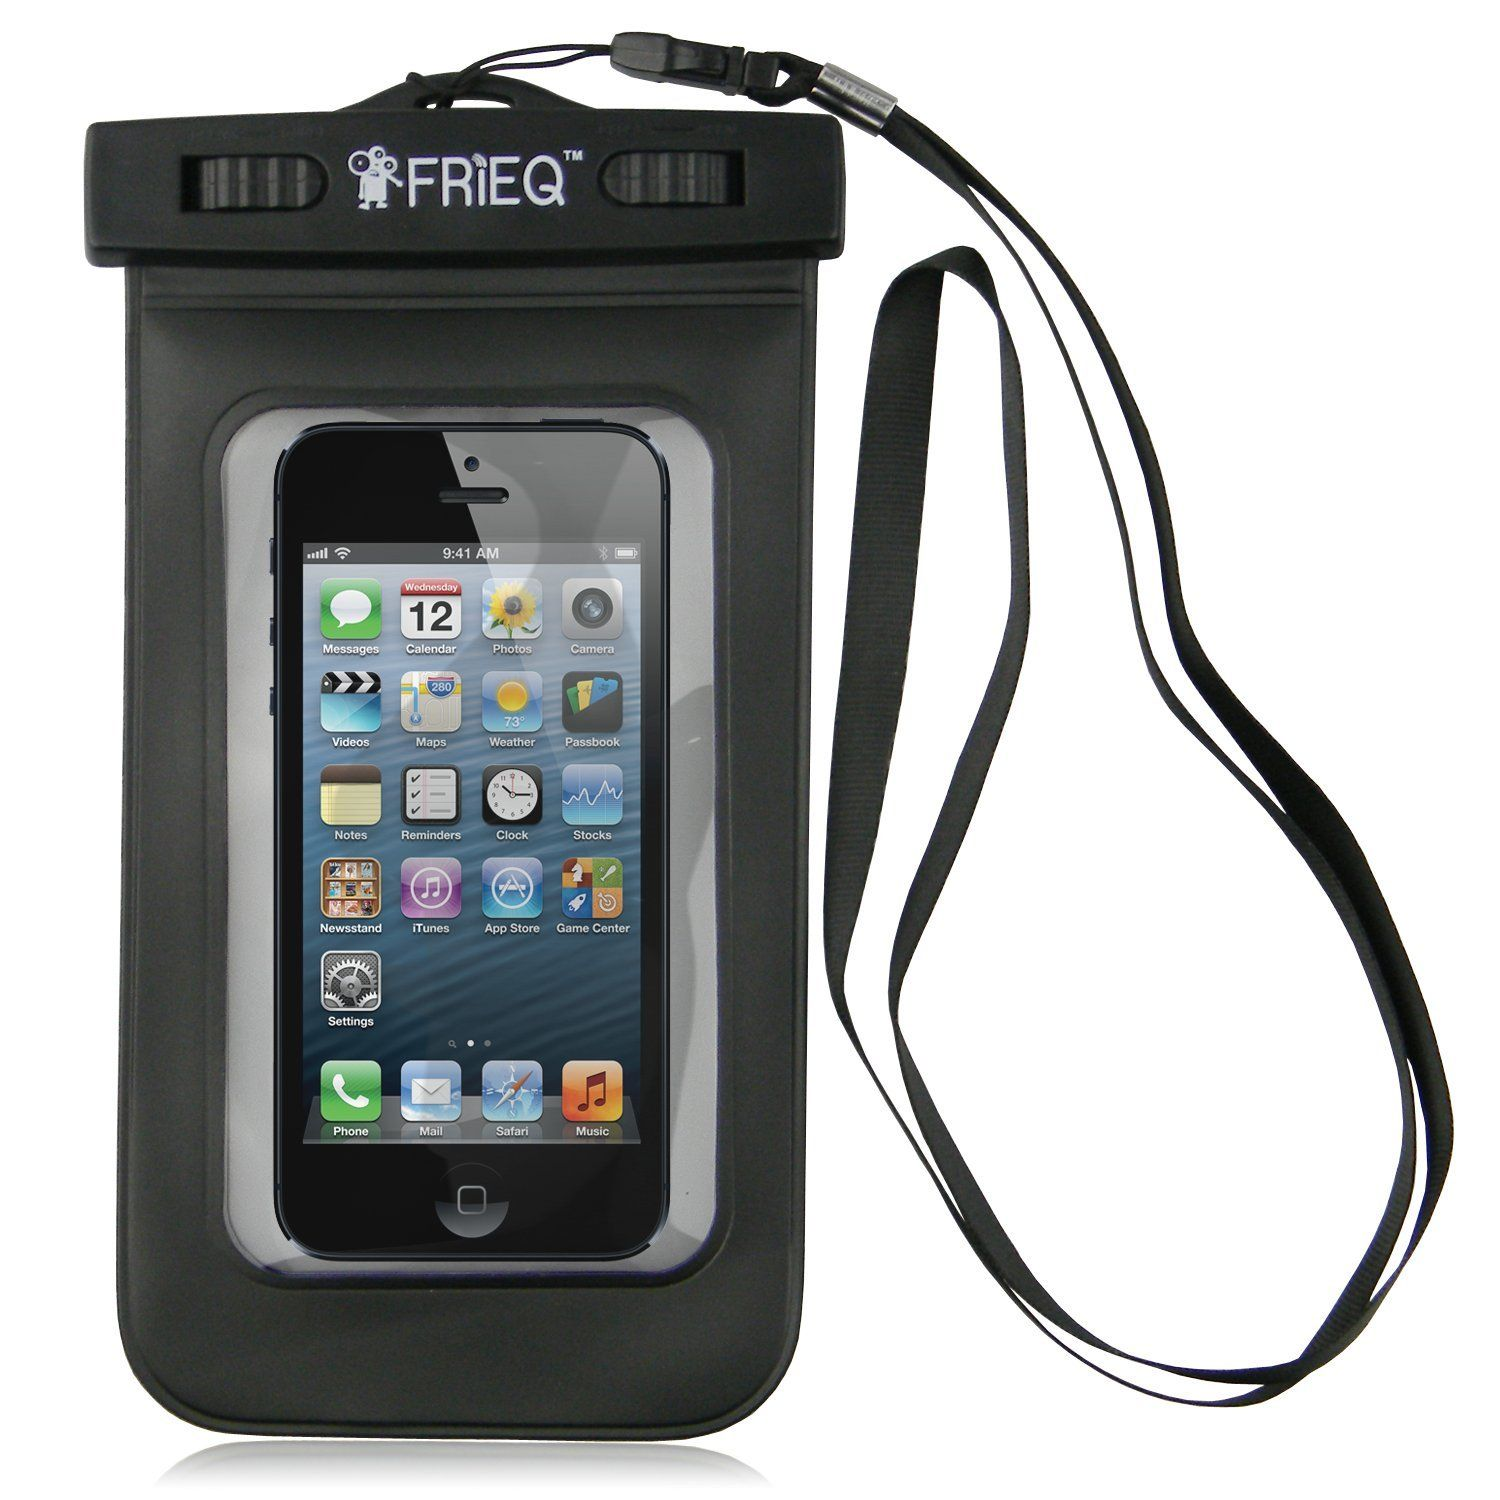 Waterproof case for iPhone 5 and iPhone 5s.